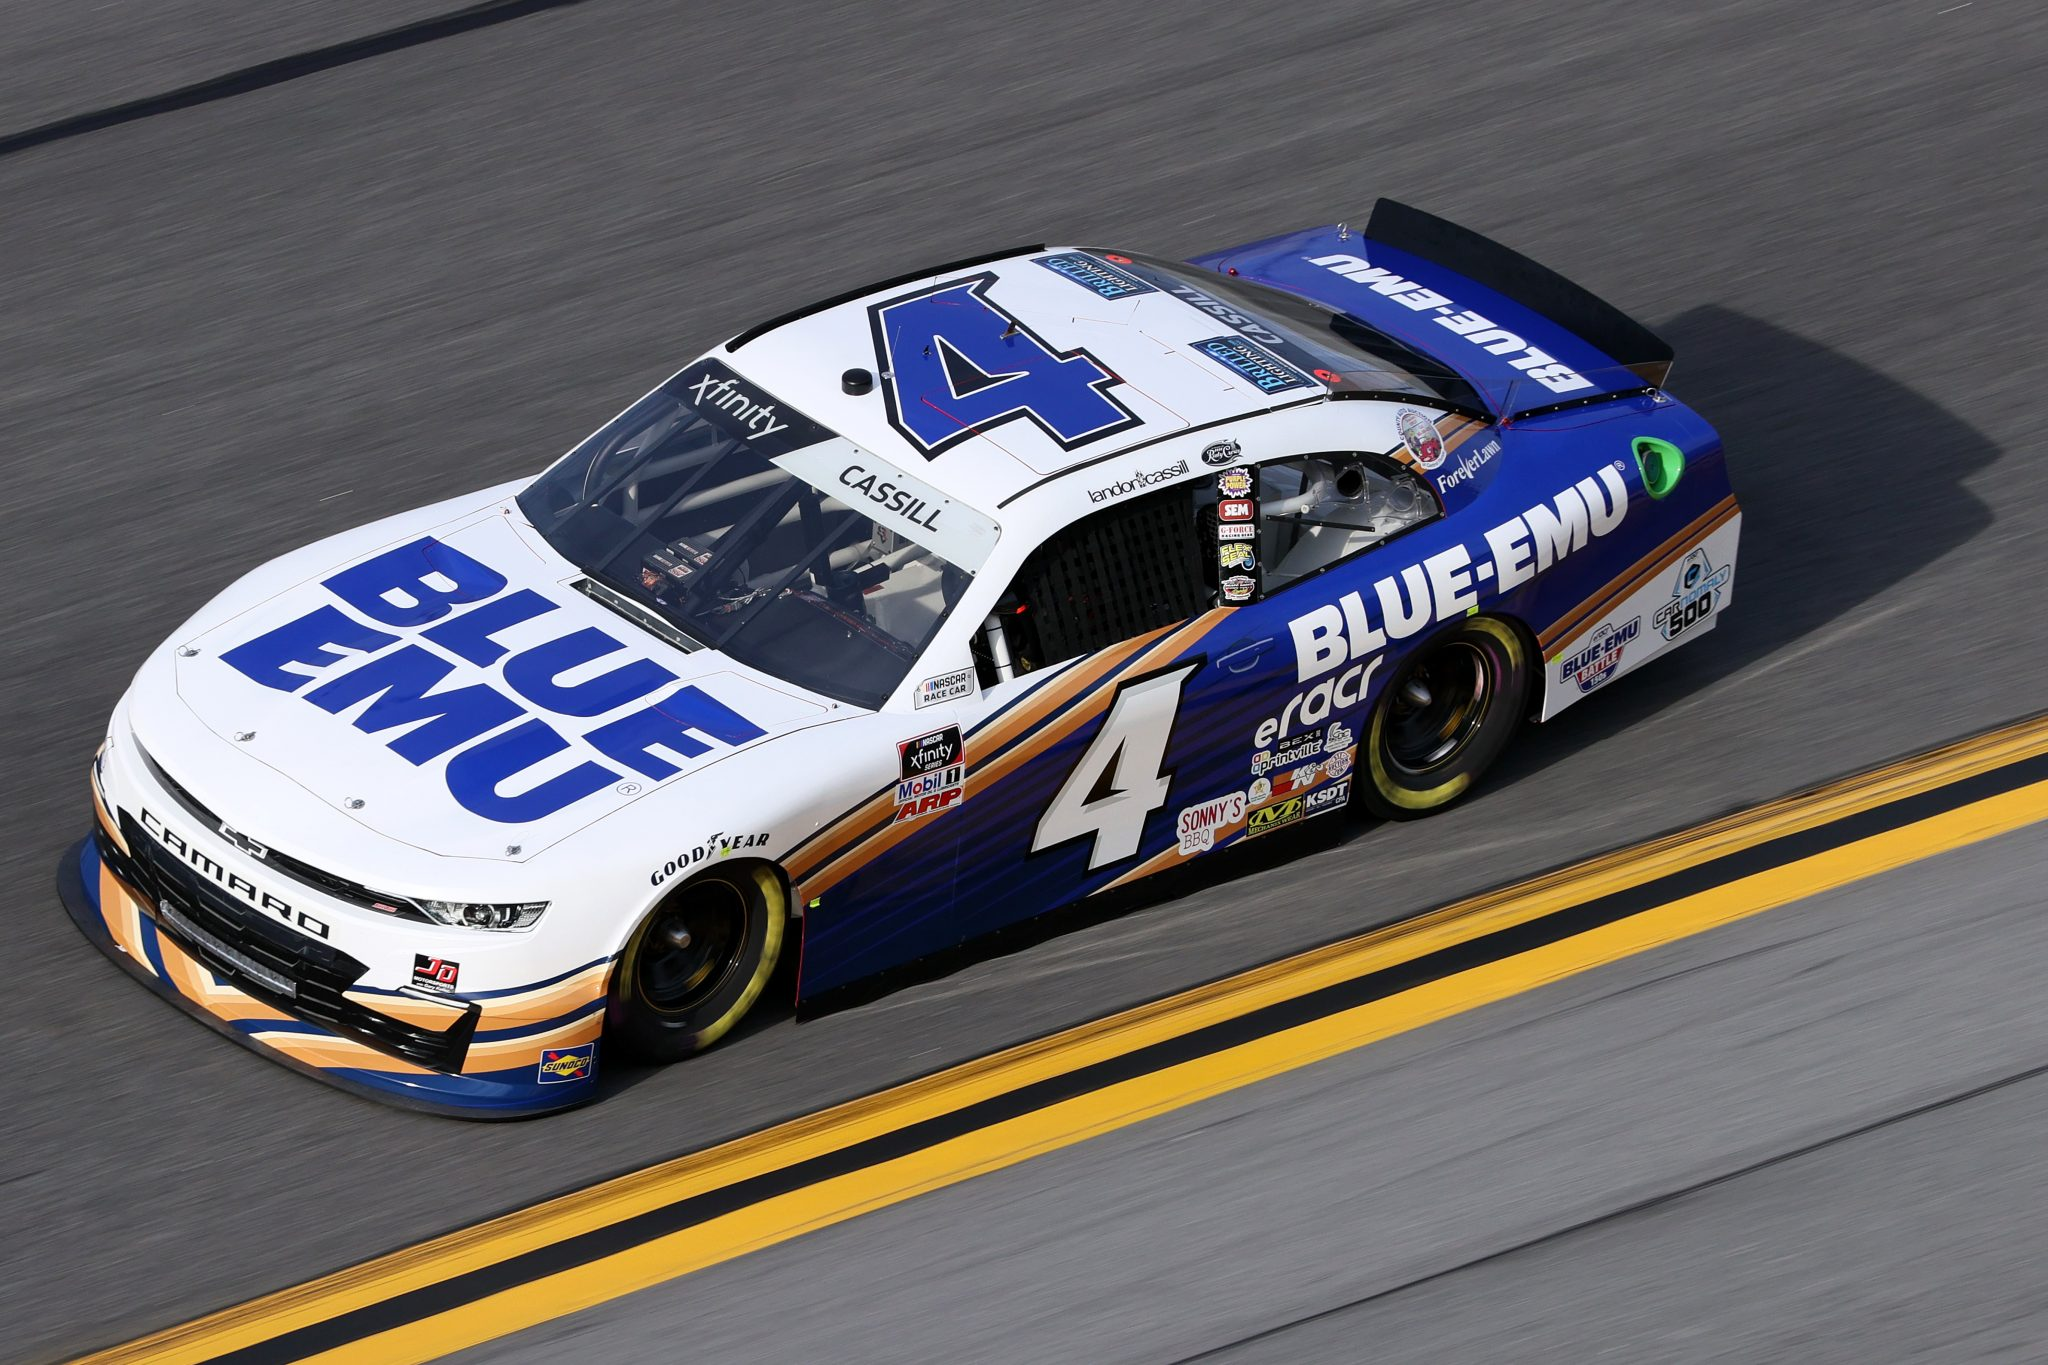 DAYTONA BEACH, FLORIDA - FEBRUARY 12: Landon Cassill, driver of the #4 Blue Emu Chevrolet, practices for the NASCAR Xfinity Series Beef. It's What's For Dinner. 300 at Daytona International Speedway on February 12, 2021 in Daytona Beach, Florida. (Photo by James Gilbert/Getty Images) | Getty Images